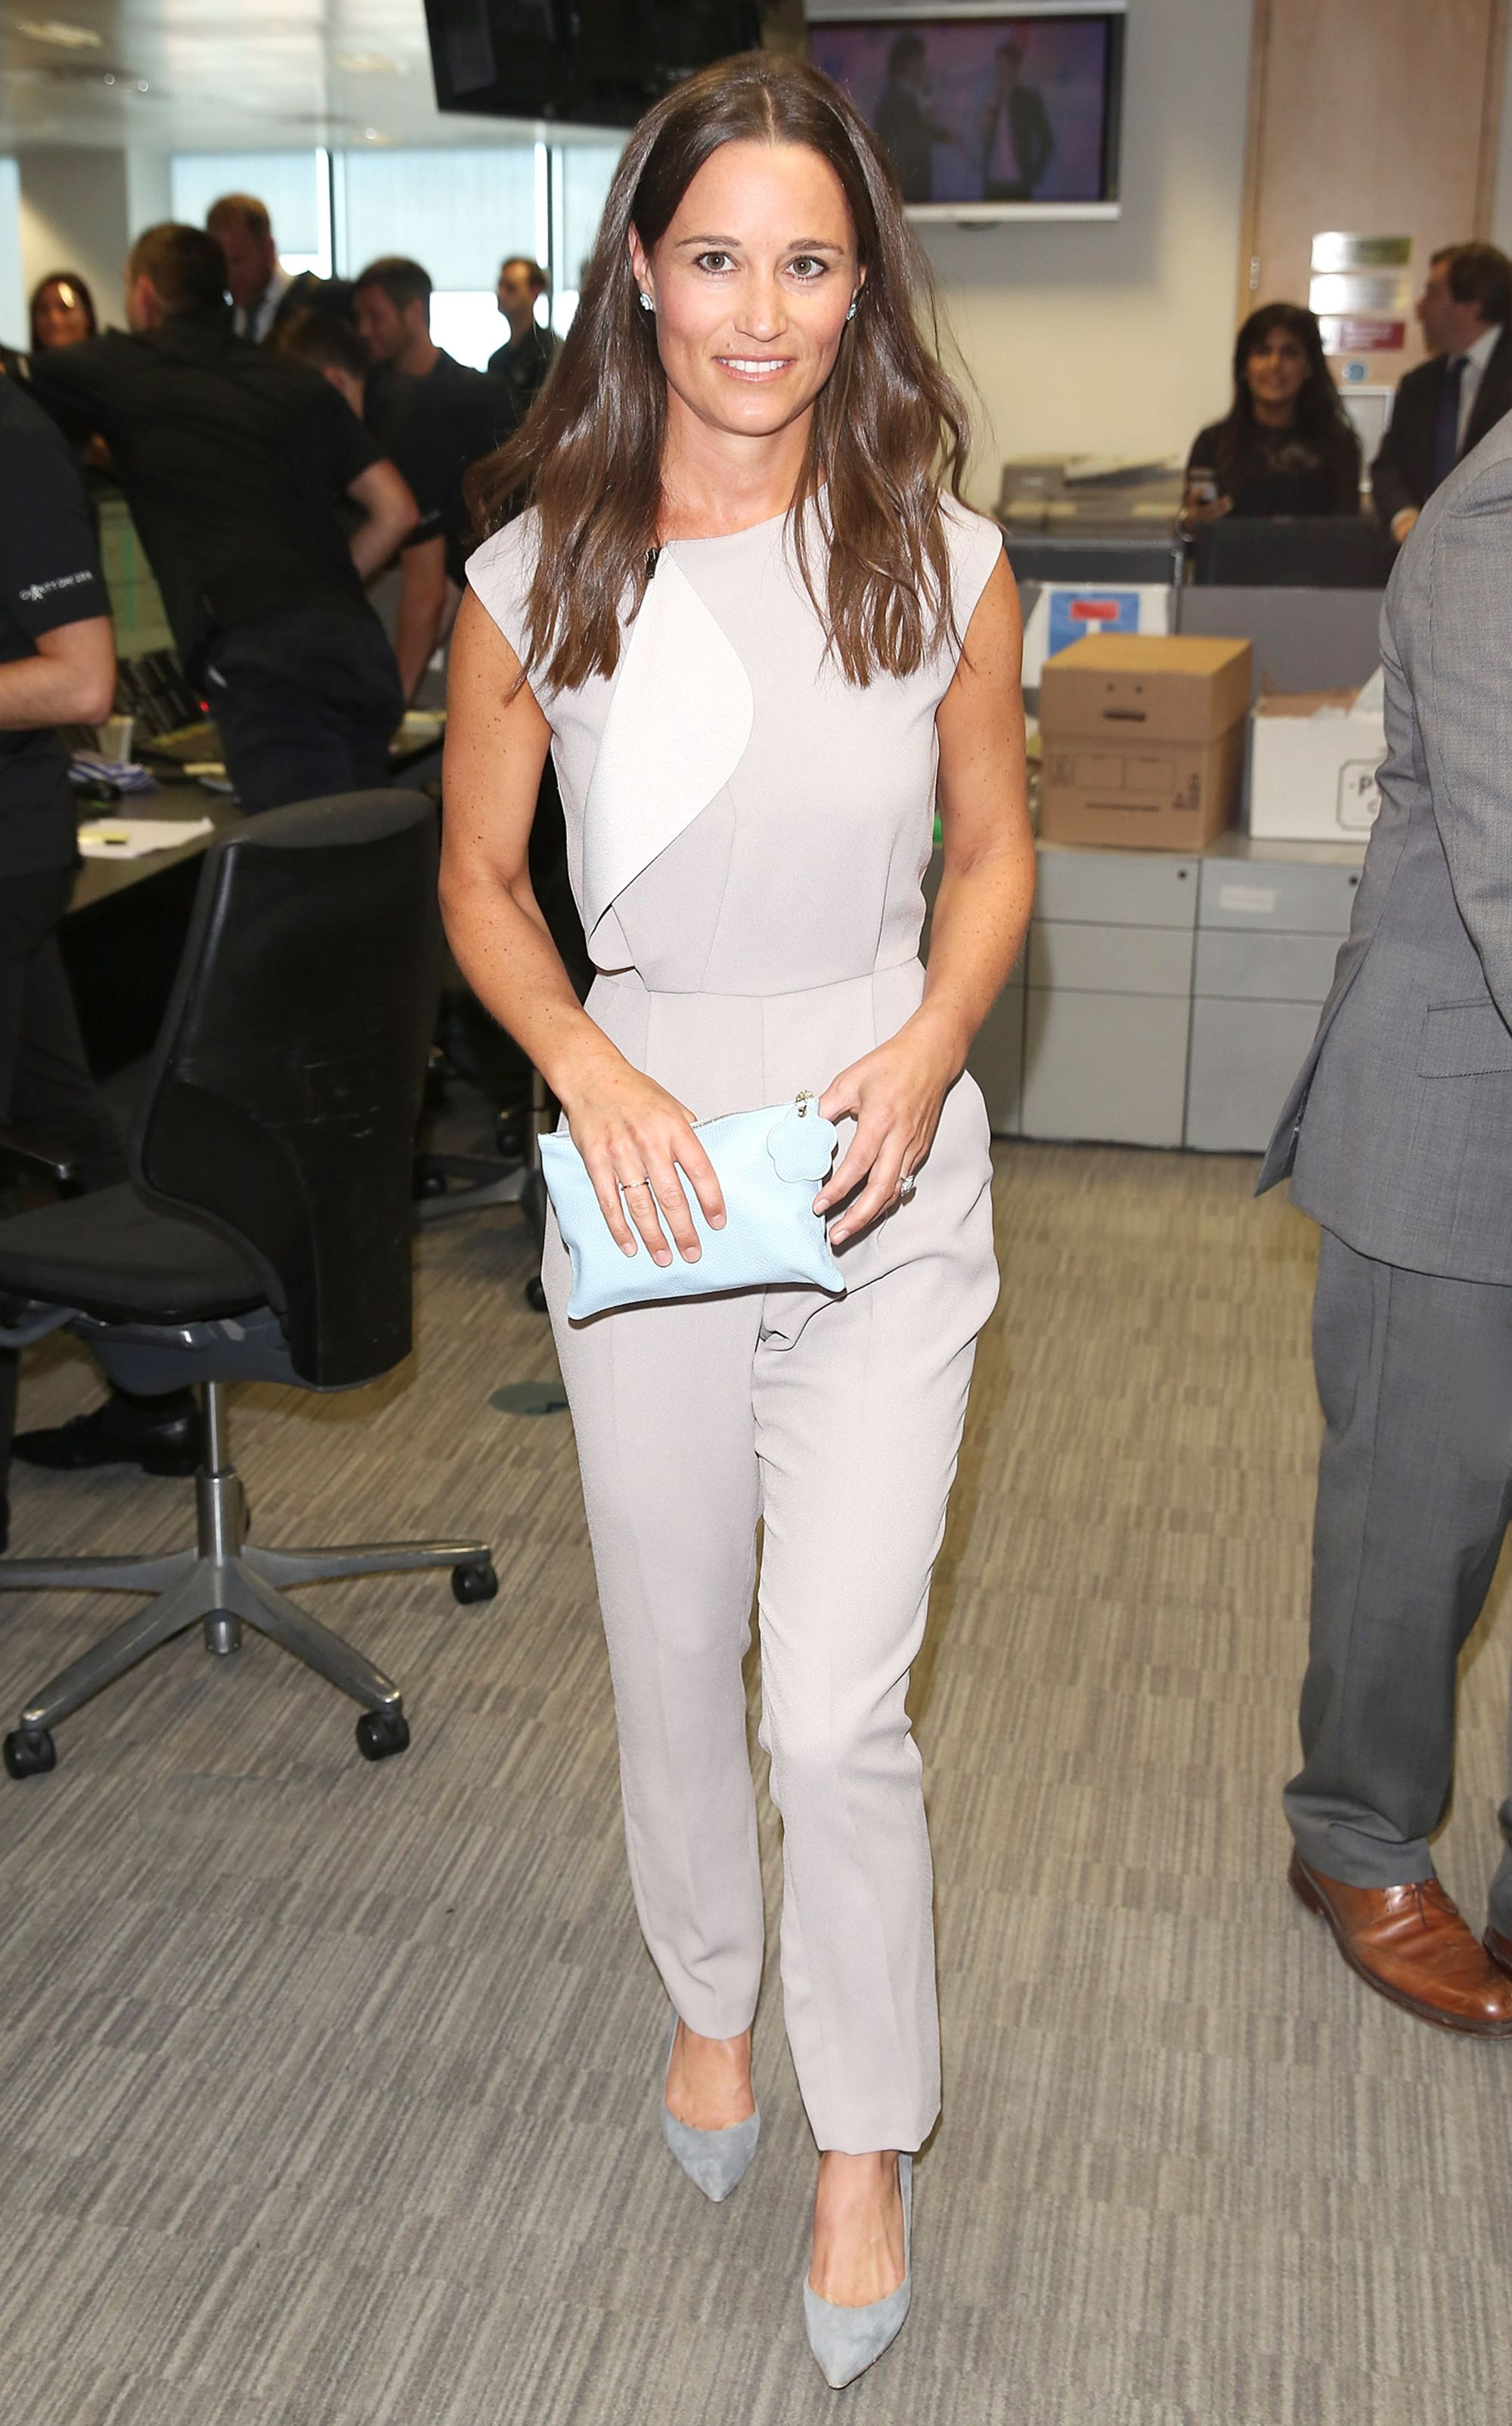 292c4fa43a5 Pippa Middleton Shows Off Her Fit Physique in Chic Gray Jumpsuit at Charity  Event from InStyle.com